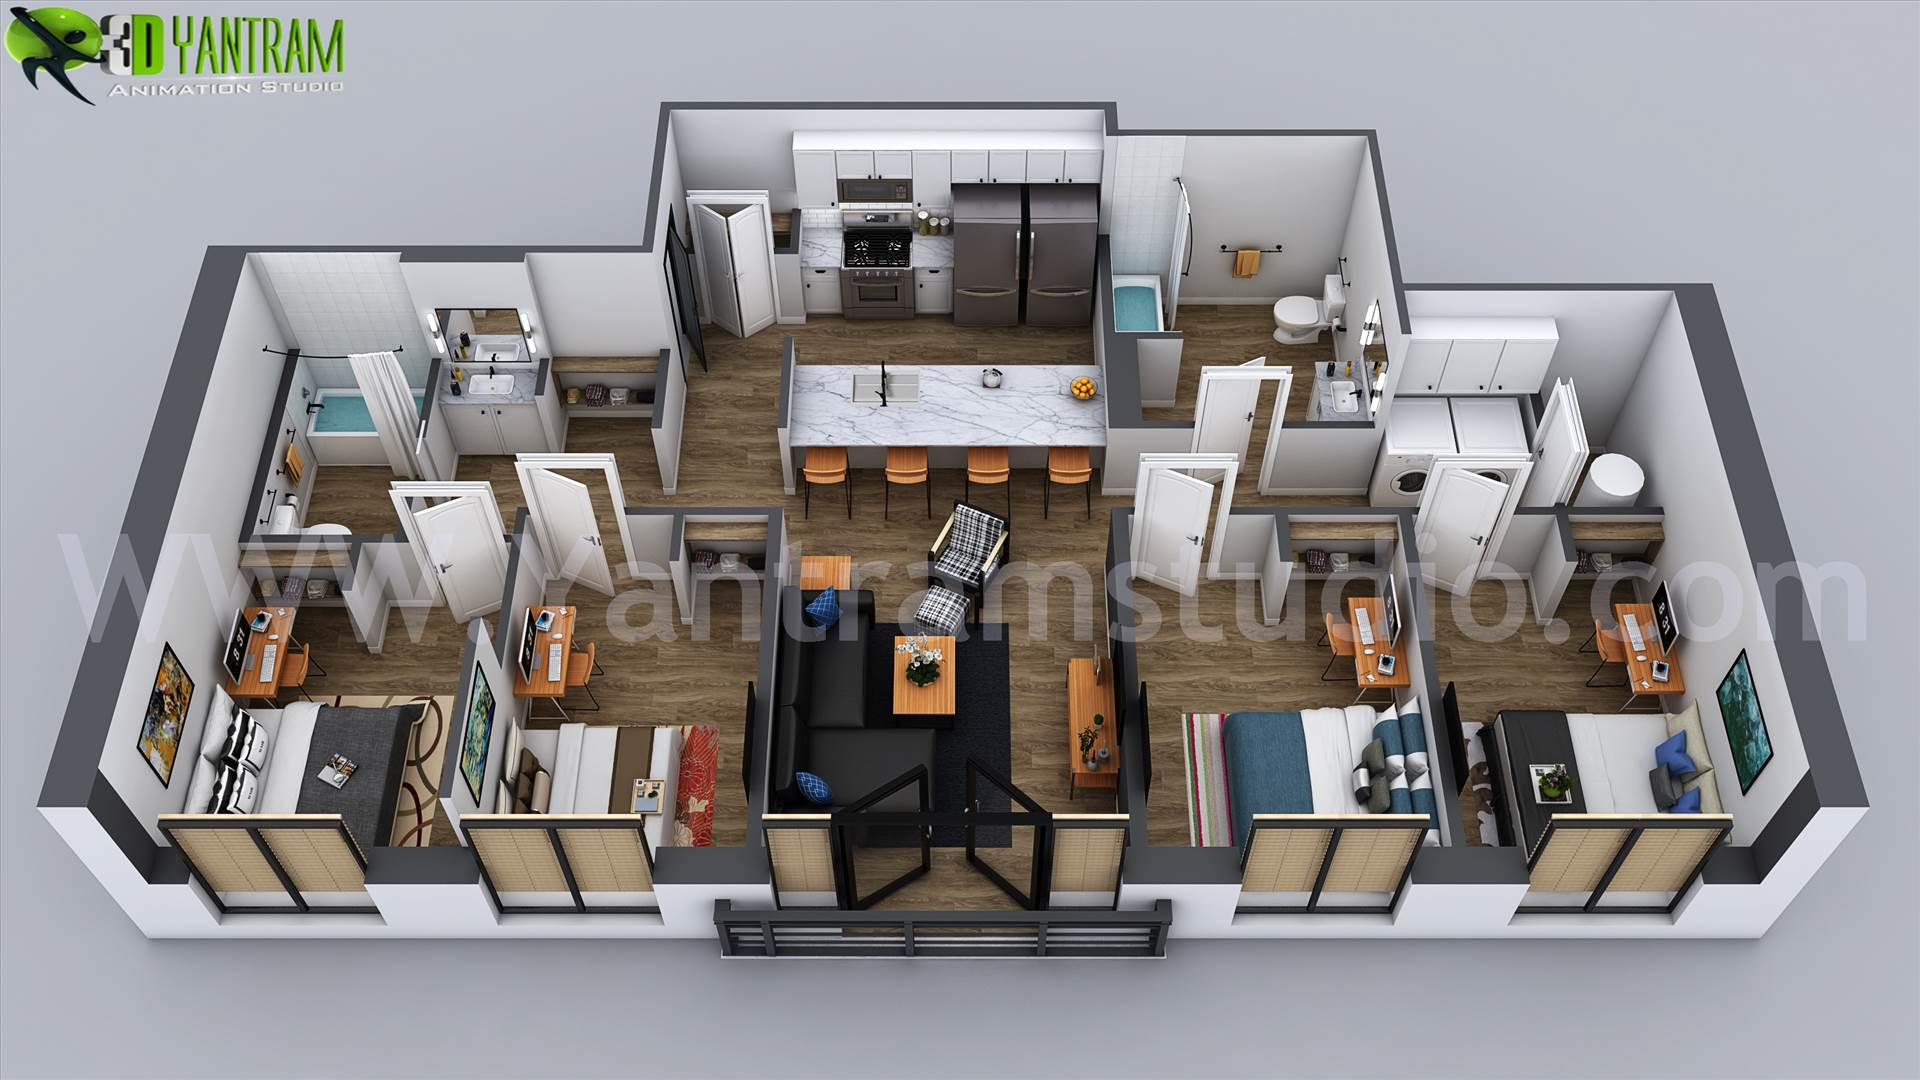 3D Home Floor Plan Designs By Yantram floor plan designer - Washington, USA Floor plans are usually drawn to show exact property area and room types. some are come along with appliances and furniture for the better idea about placement and space utilization. Read MOre -- https://goo.gl/6fYD3K  #Modern #3D #floorplan #design #i by yantramstudio